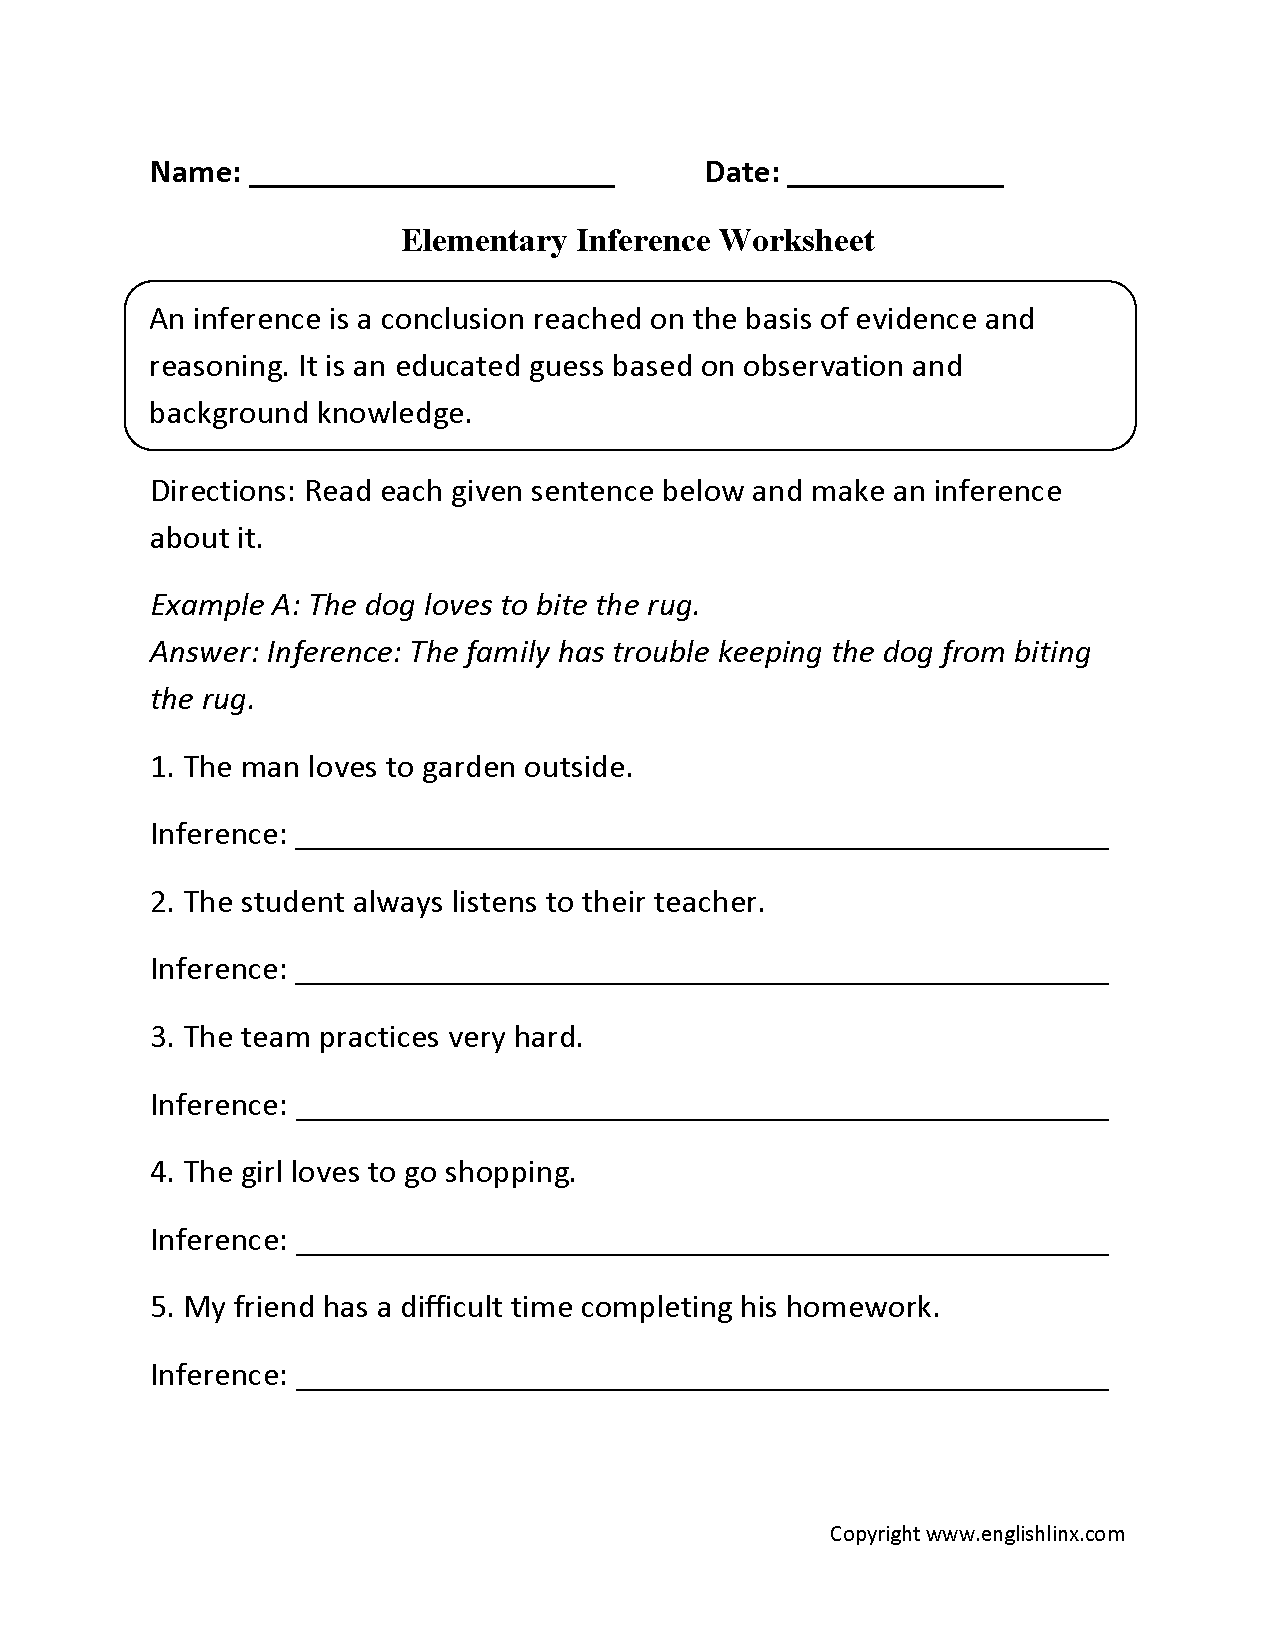 Elementary Inference Worksheets Inference – Drawing Conclusions Worksheets 4th Grade